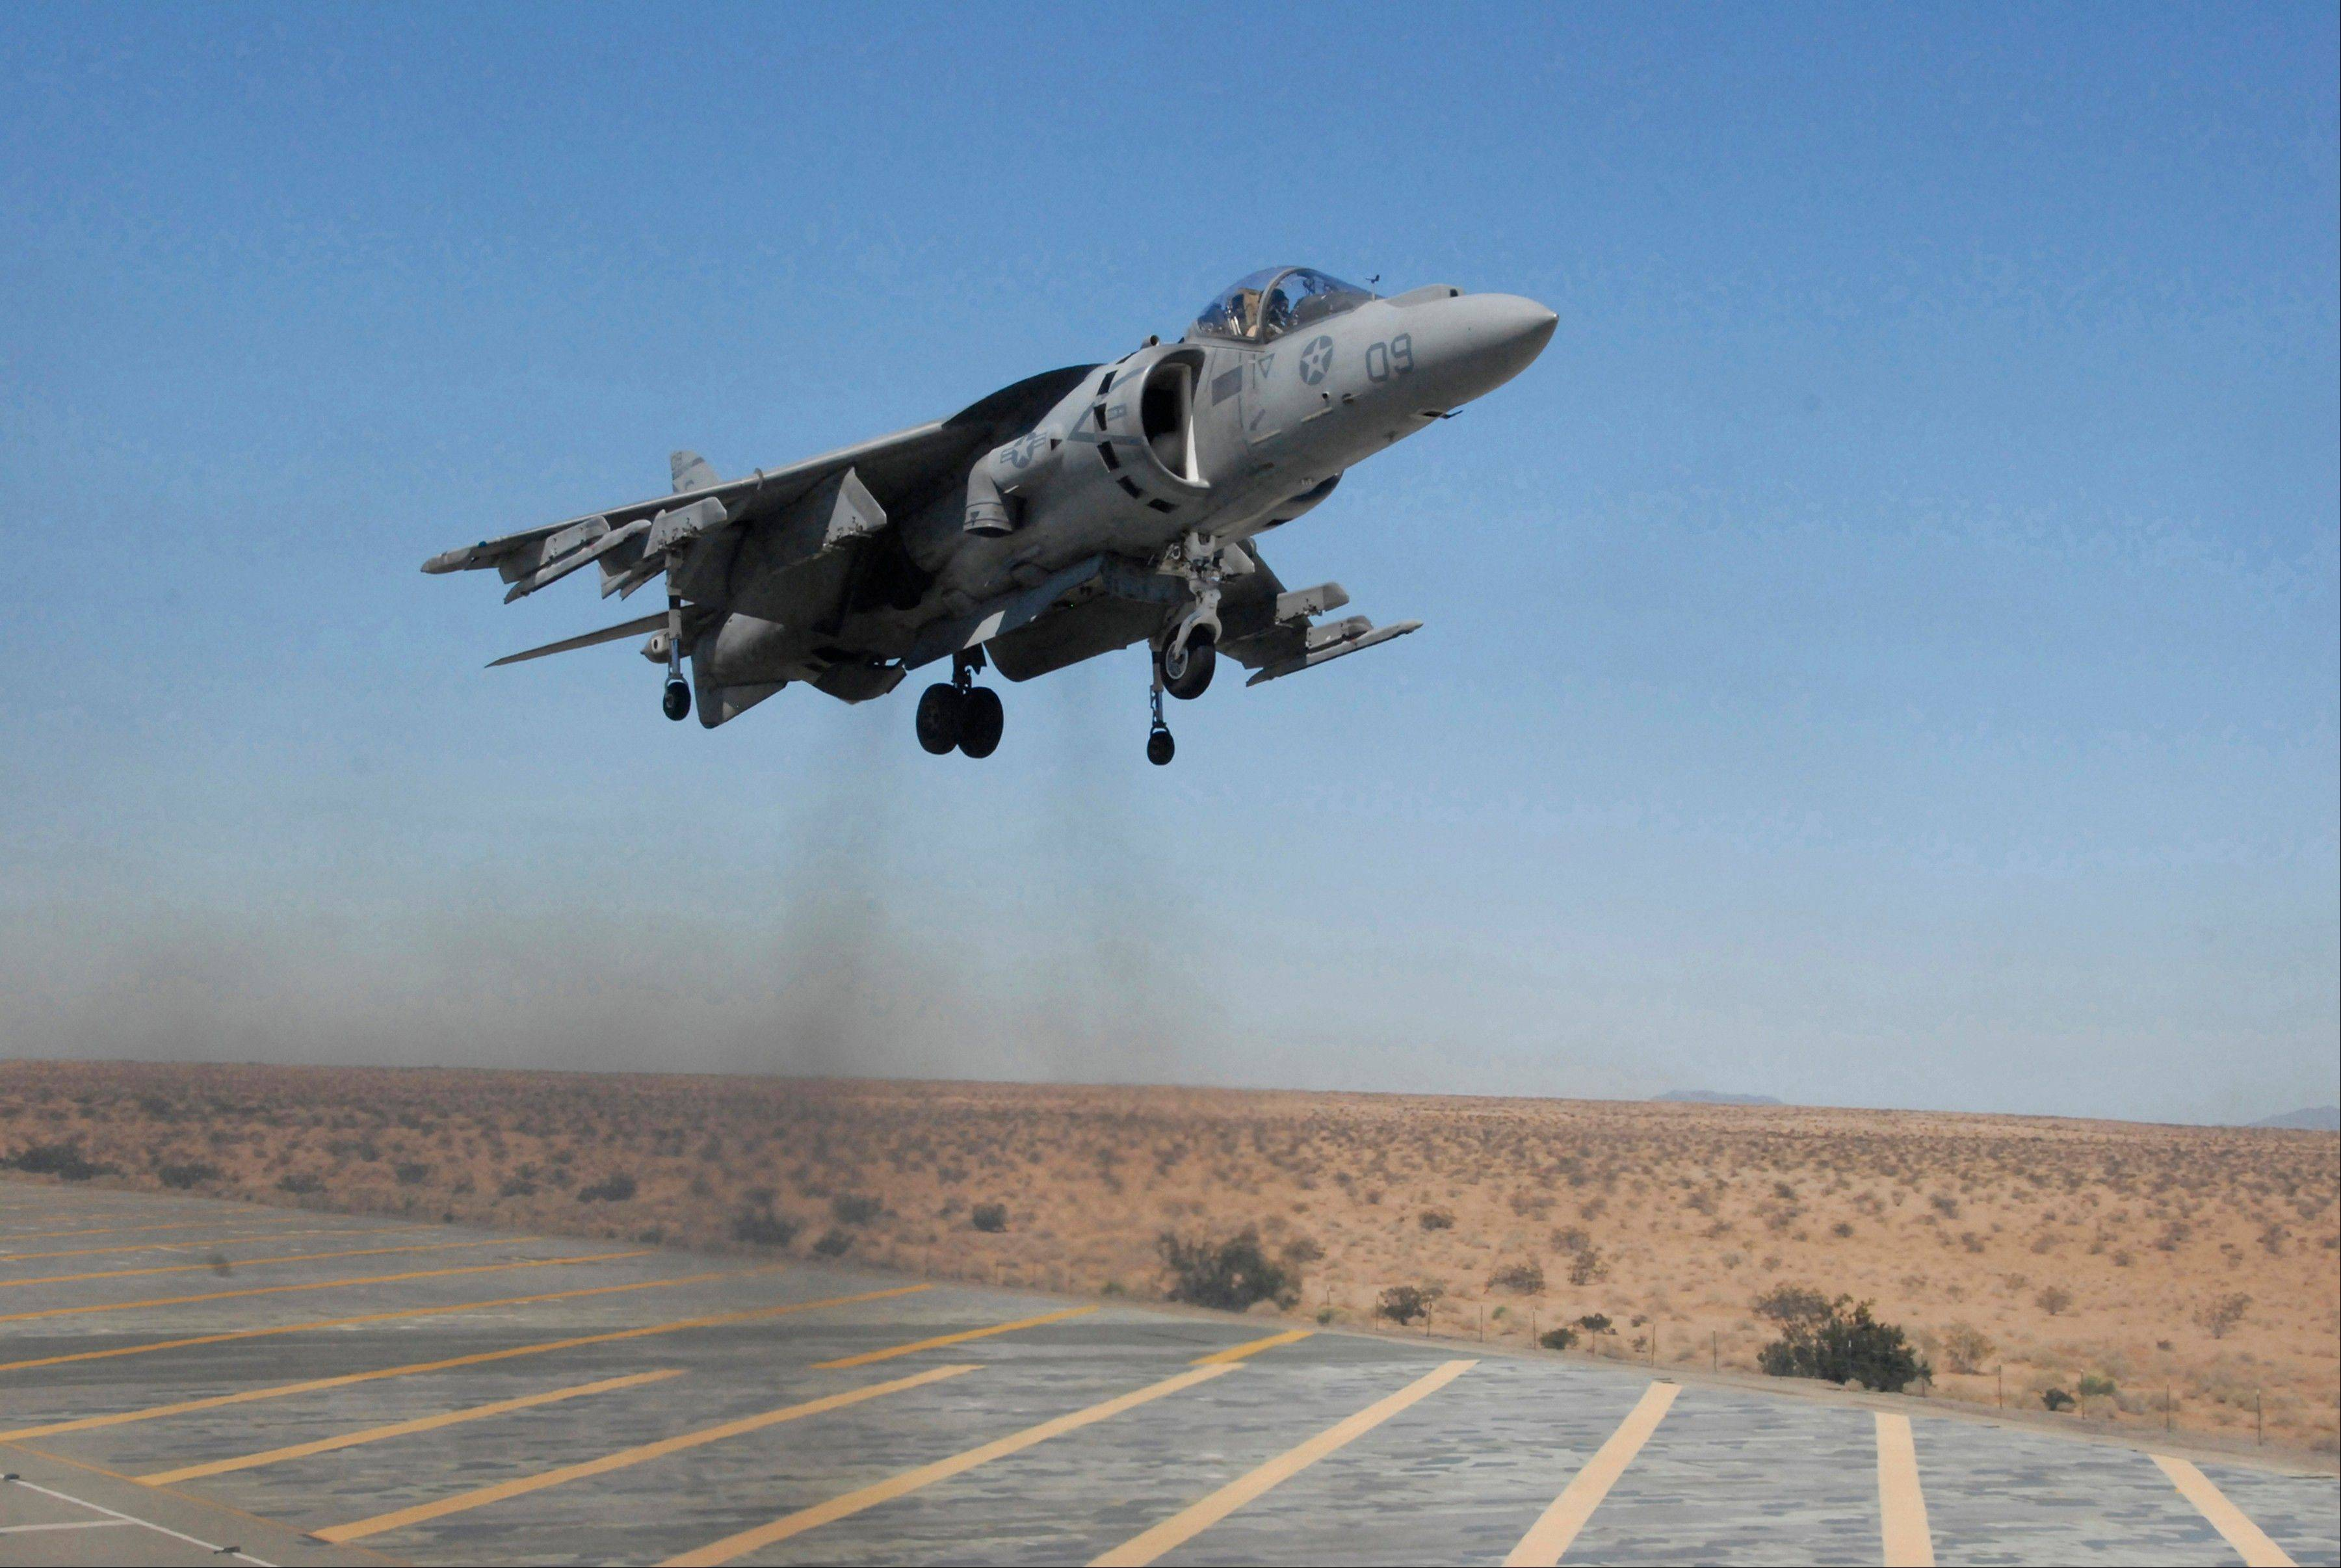 In this Sept. 12, 2008 file photo provided by the U.S. Marine Corps., Capt. Andrew D'Ambrogi, Marine Attack Squadron 211 pilot, prepares to land an AV-8B Harrier at Auxiliary Airfield II, a simulated amphibious assault ship flight deck on the Barry M. Goldwater Range in Yuma, Ariz. Two U.S. fighter jets have dropped four unarmed bombs in Australia's Great Barrier Reef Marine Park when a training exercise went wrong, Tuesday, July 16, 2013.